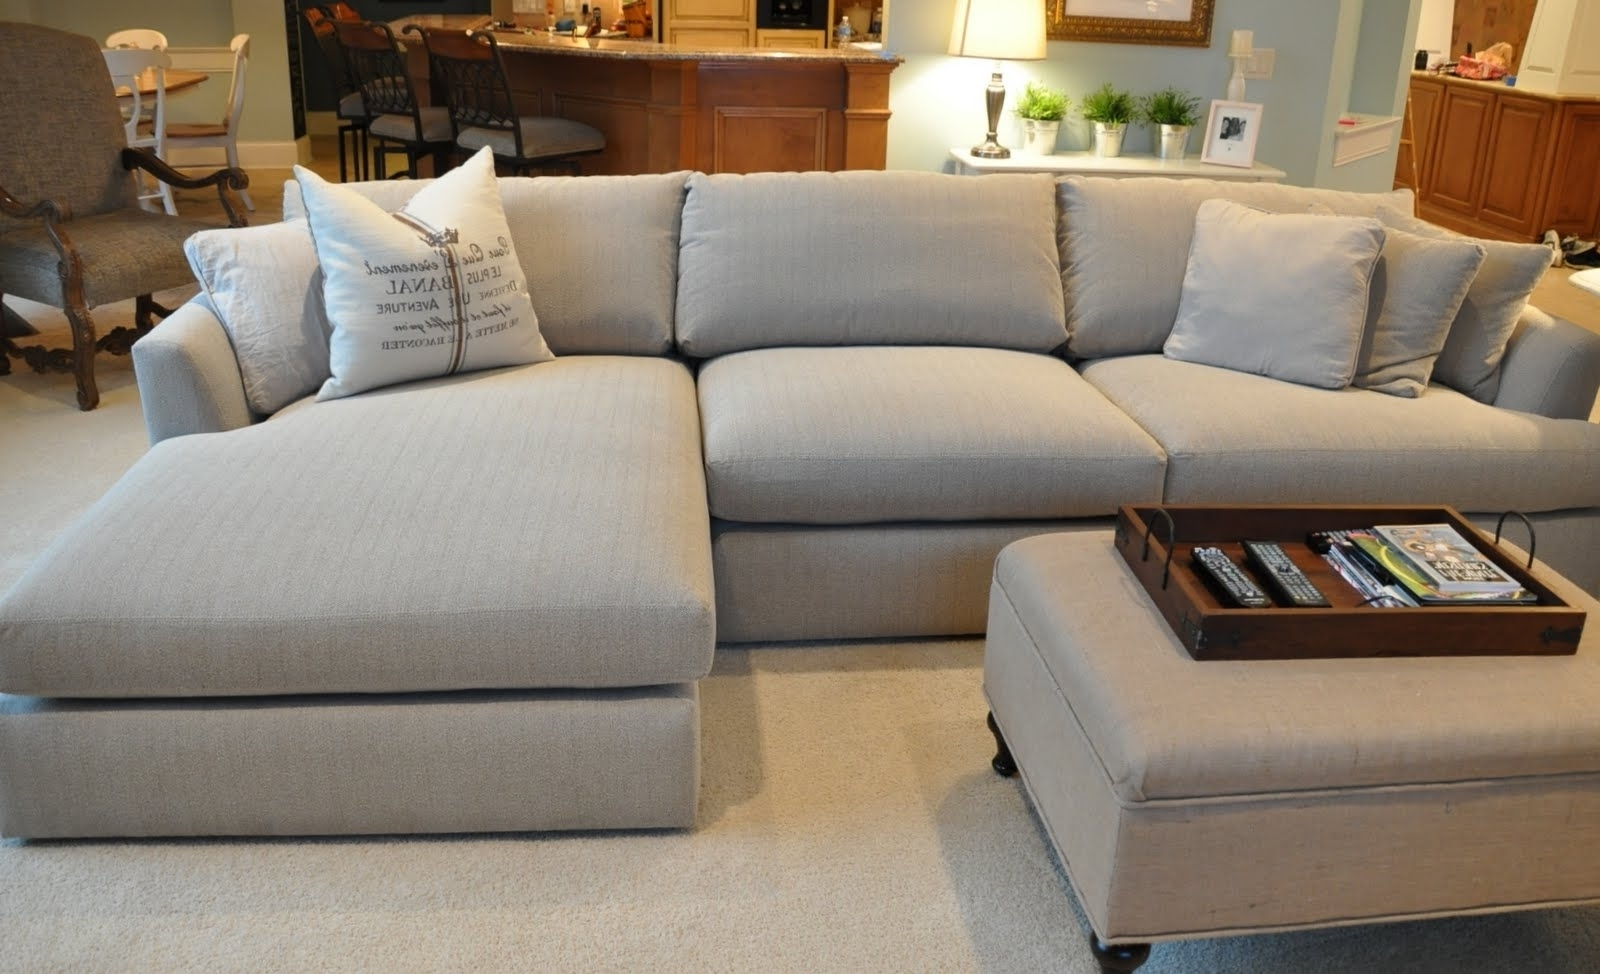 Charming Deep Cushion Sofa #2 - Selection Of Furniture, Feature Lighting, Decoration U0026 Artwork.